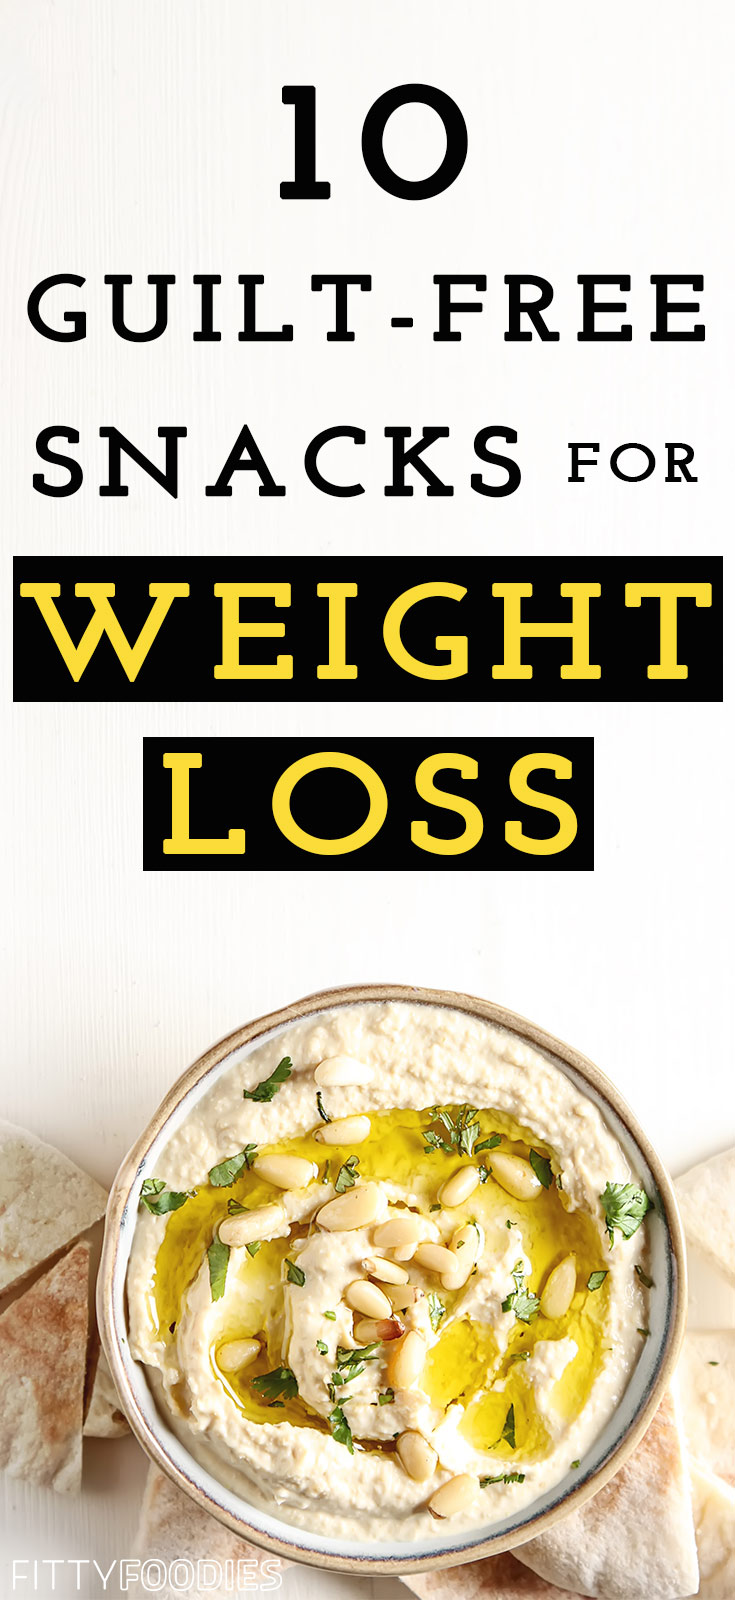 Guilt-free Snacks For Weightloss | Healthy Snacks For Weightloss | Delicious Foods To Lose Weight Fast | Lose Weight In A Month